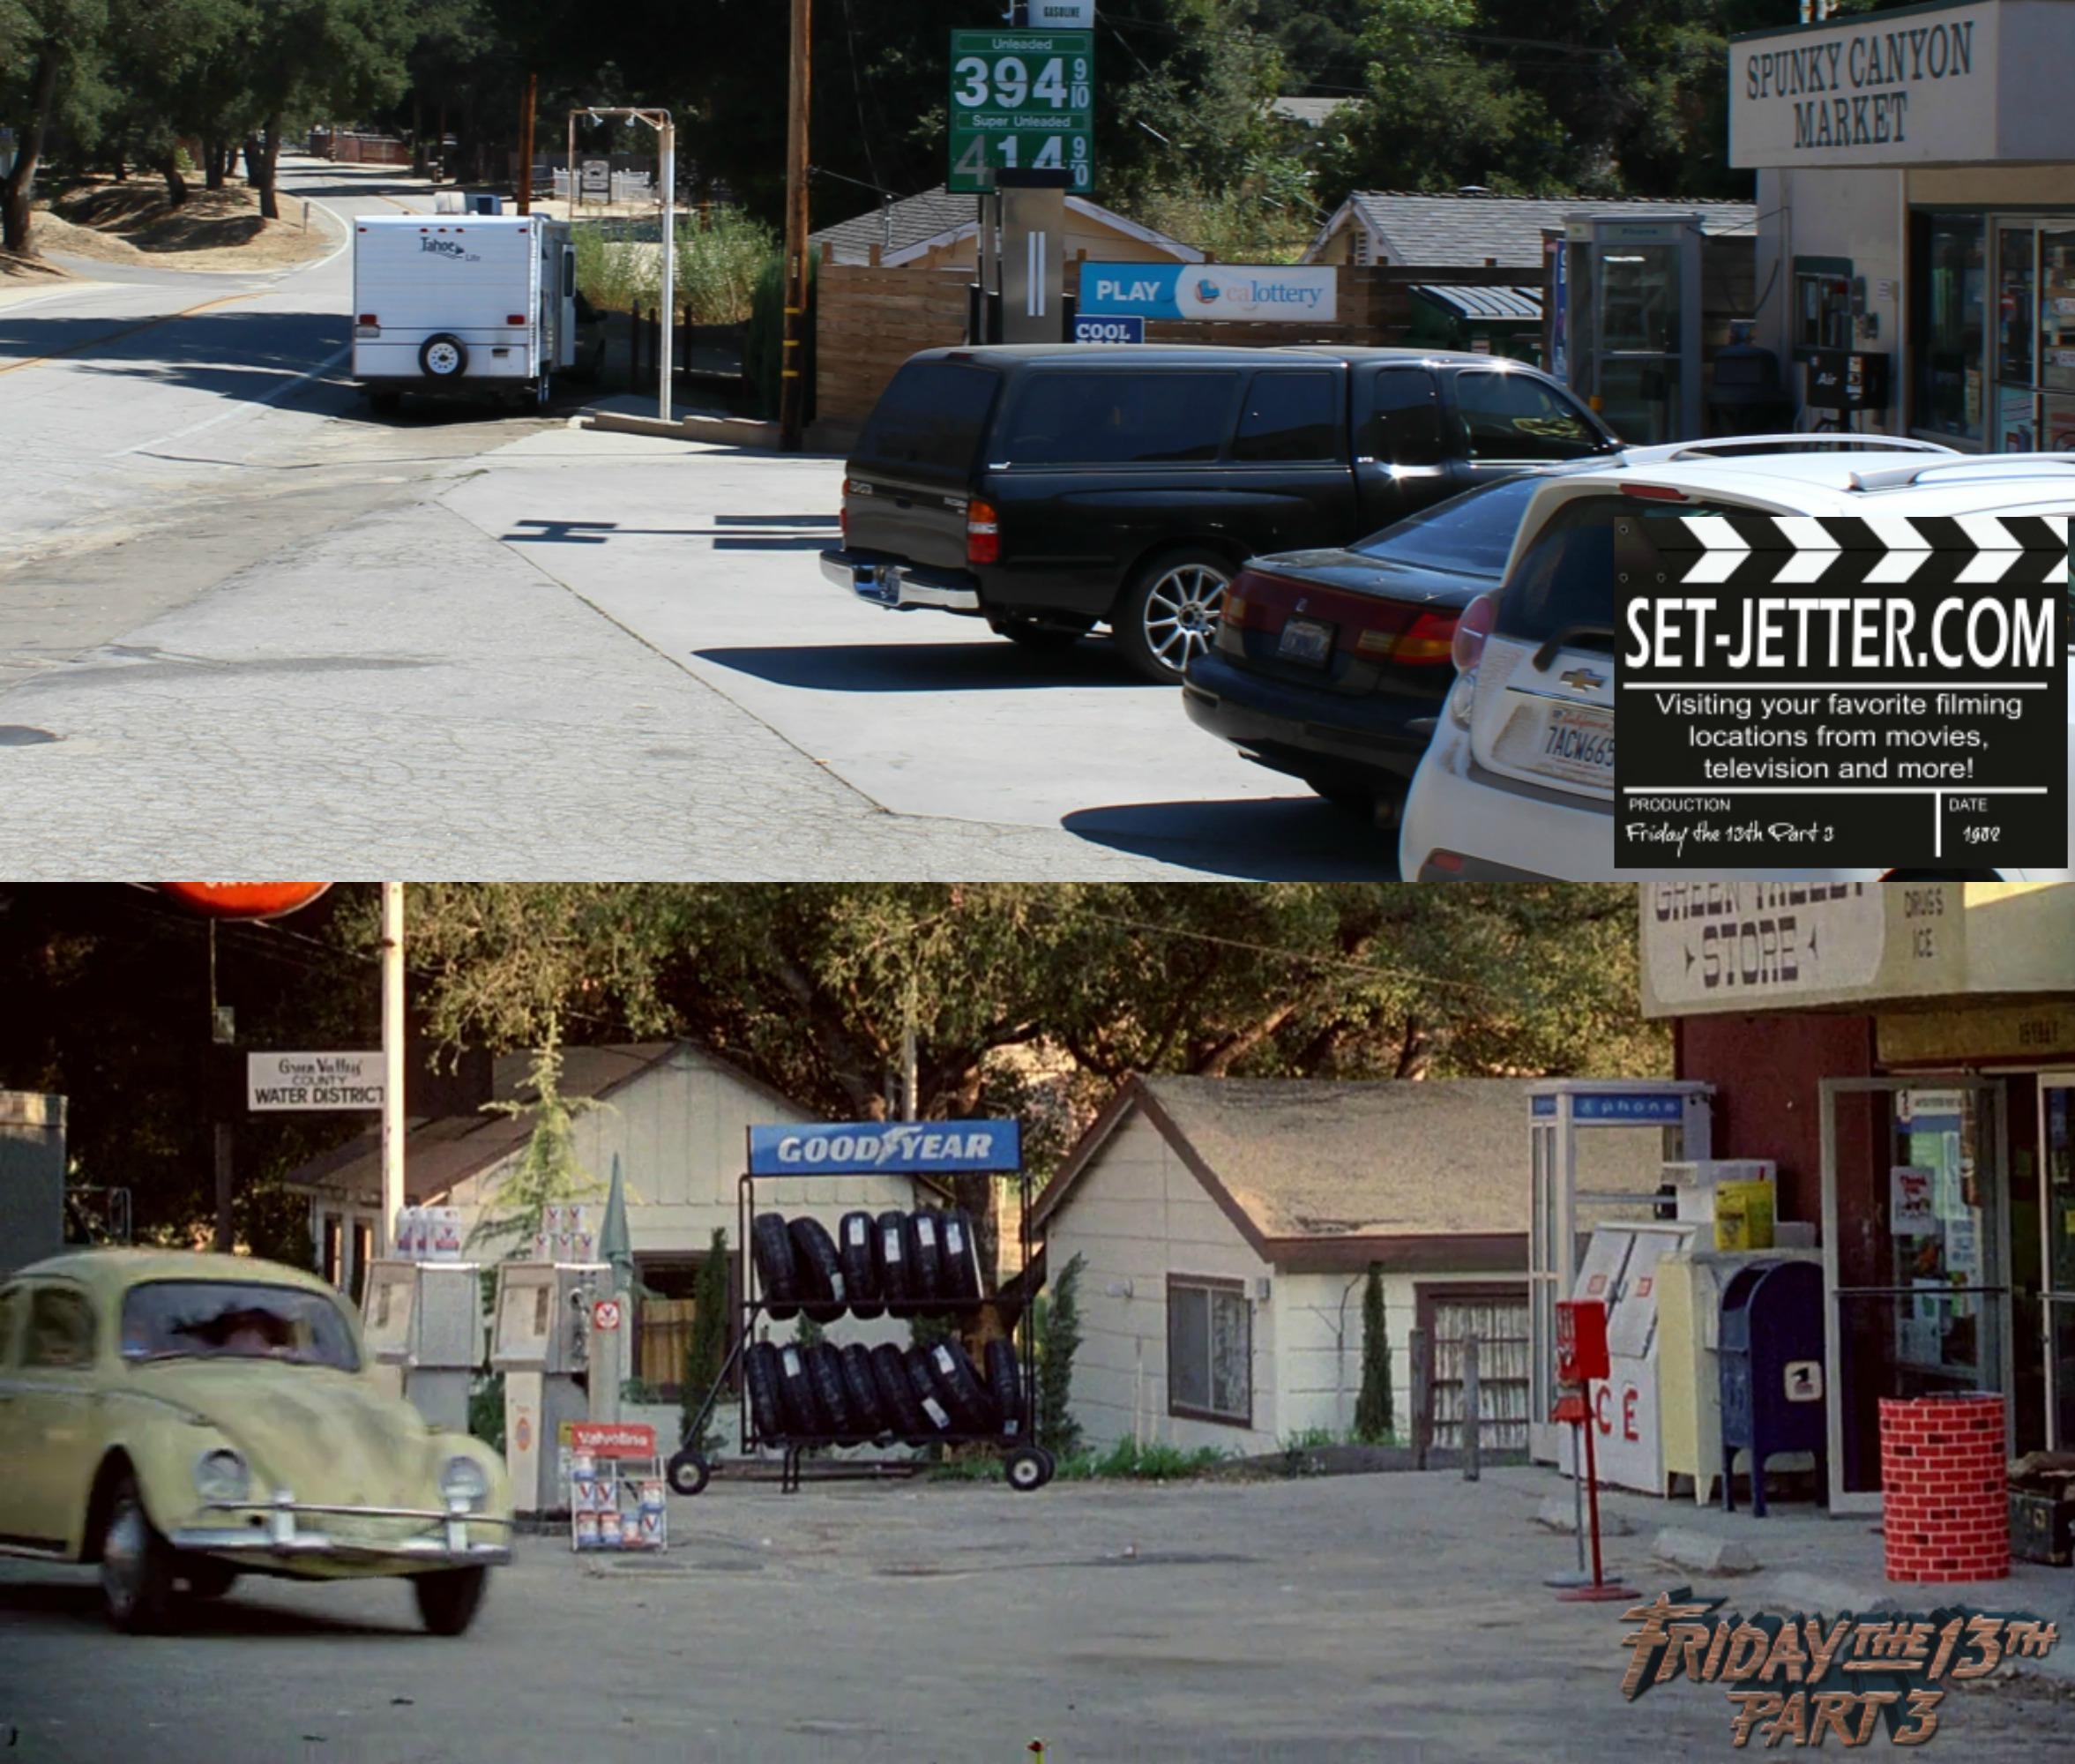 Friday the 13th Part 3 compairson 182.jpg